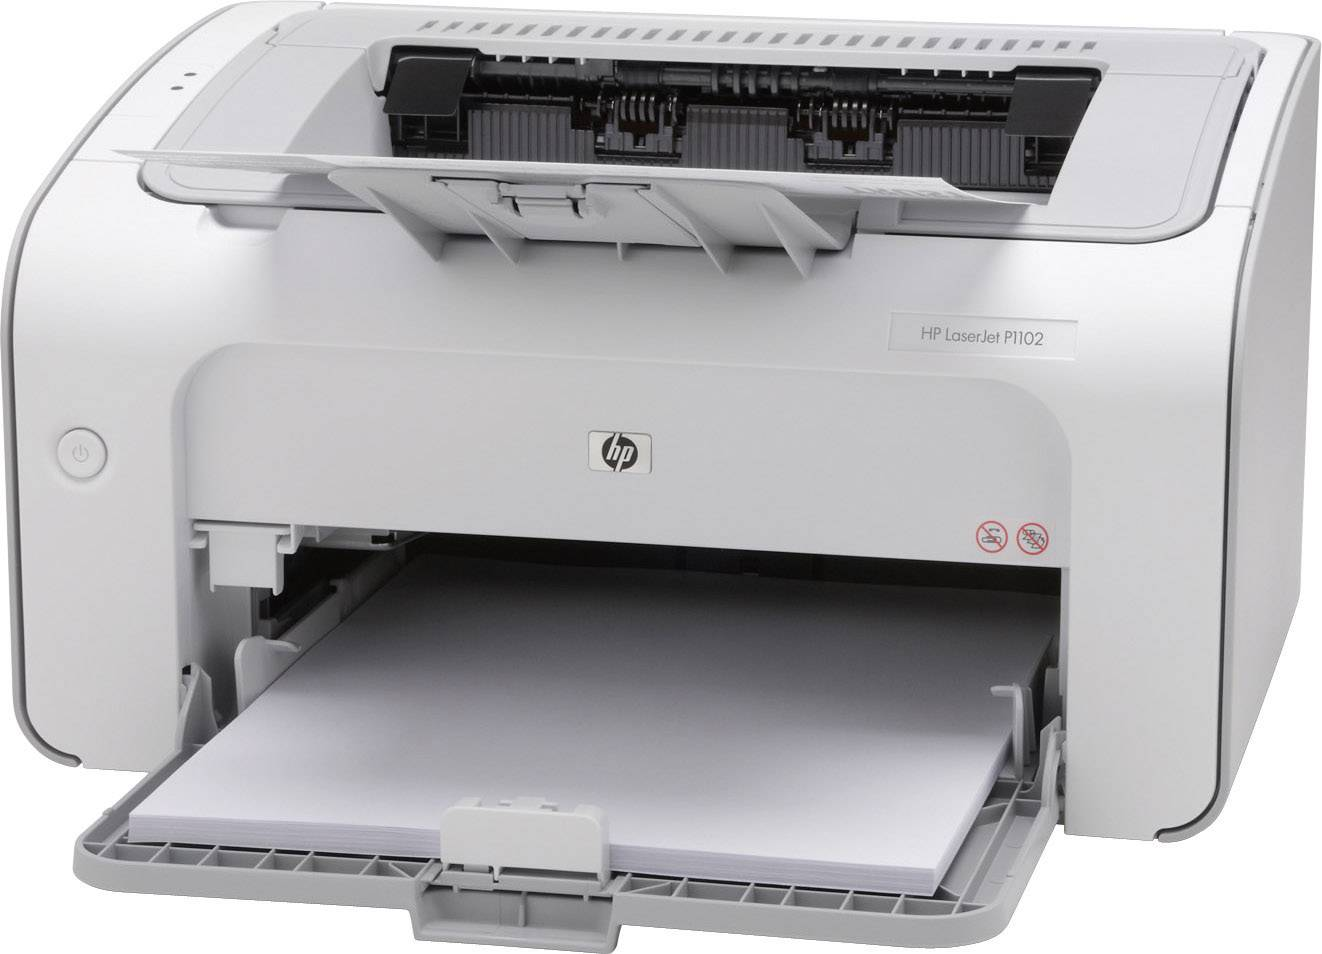 hp laserjet p1102 monochrome laser printer a4 600 x 600 dpi from rh conrad com HP LaserJet P1102w Printer Install HP LaserJet P1102w Printer